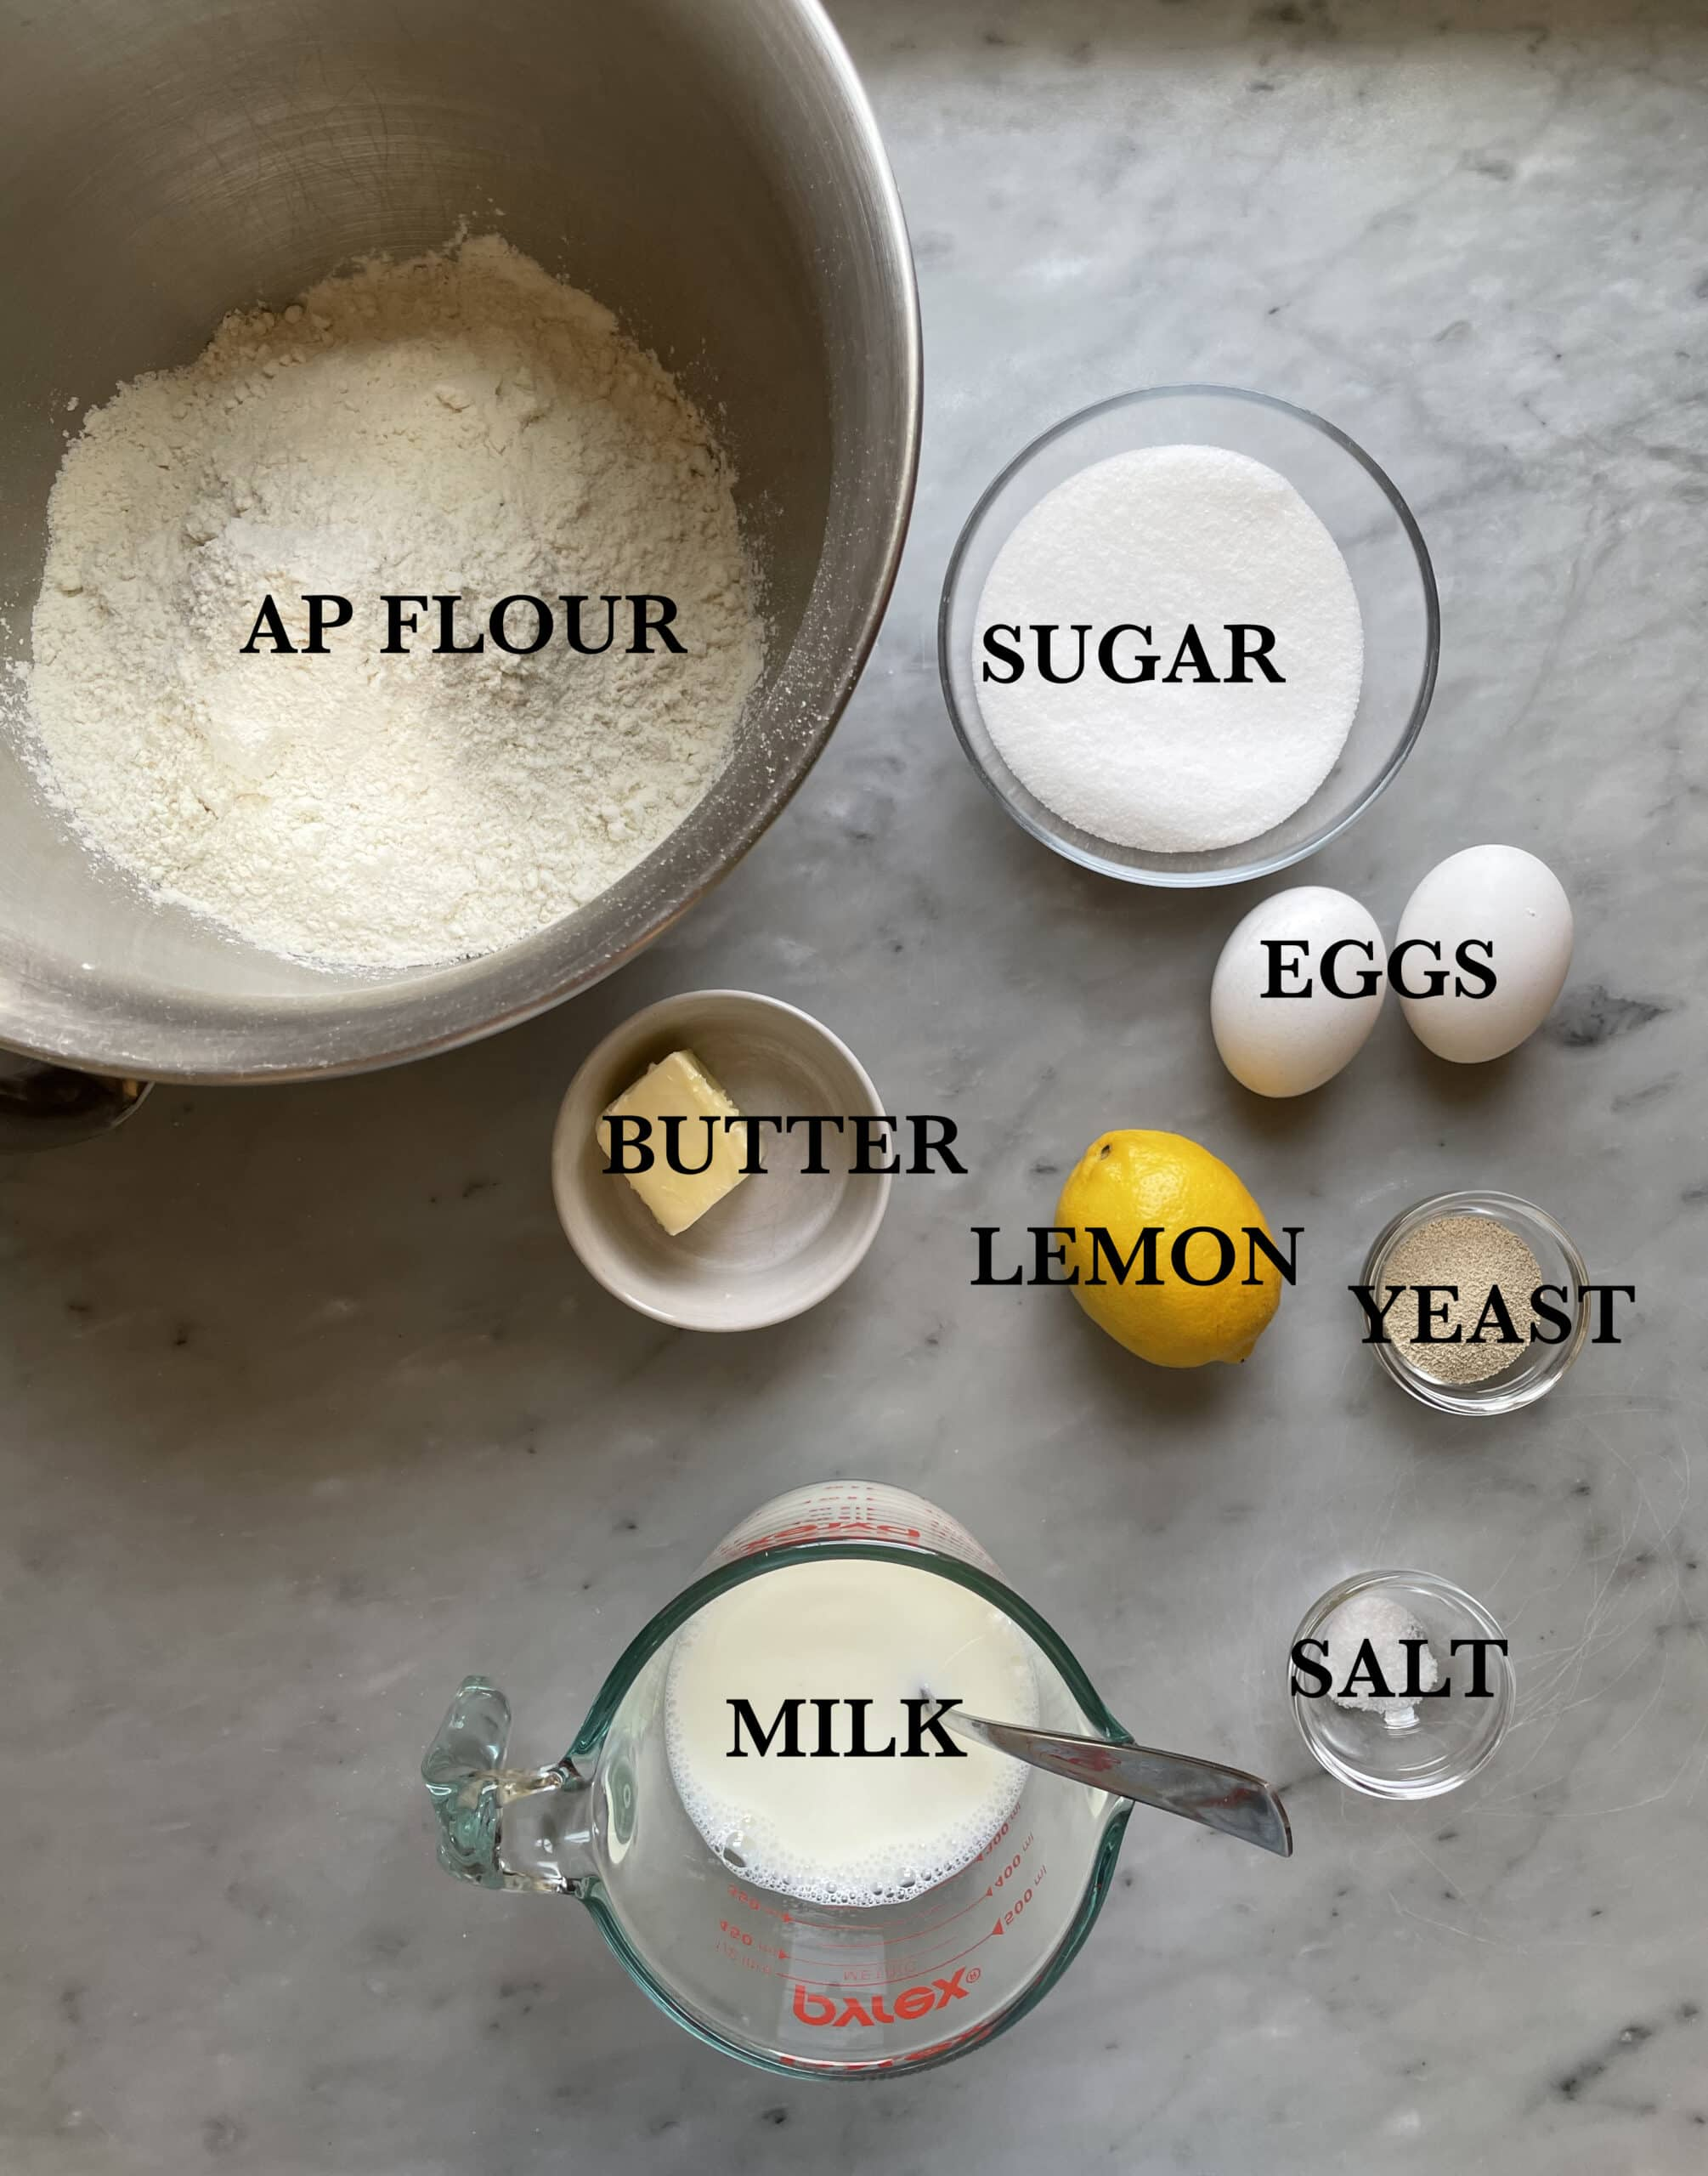 Image of the ingredients for the dough of lemon poppy seed buns.